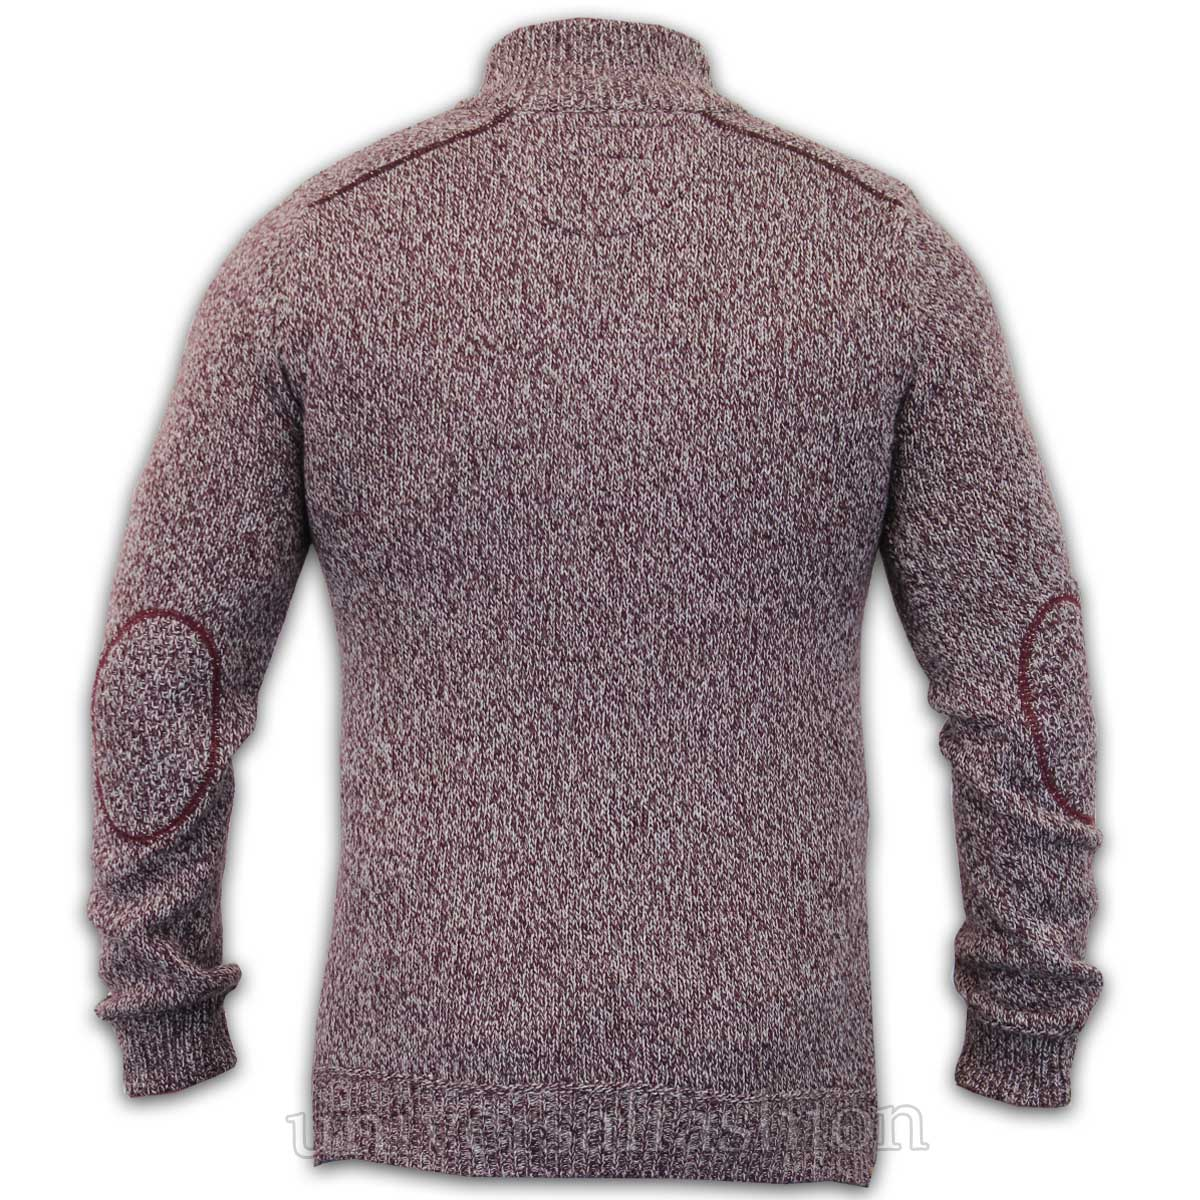 Mens-Jumper-Threadbare-Wool-Mix-Knitted-Pullover-Top-Sweater-Casual-Winter-New thumbnail 3